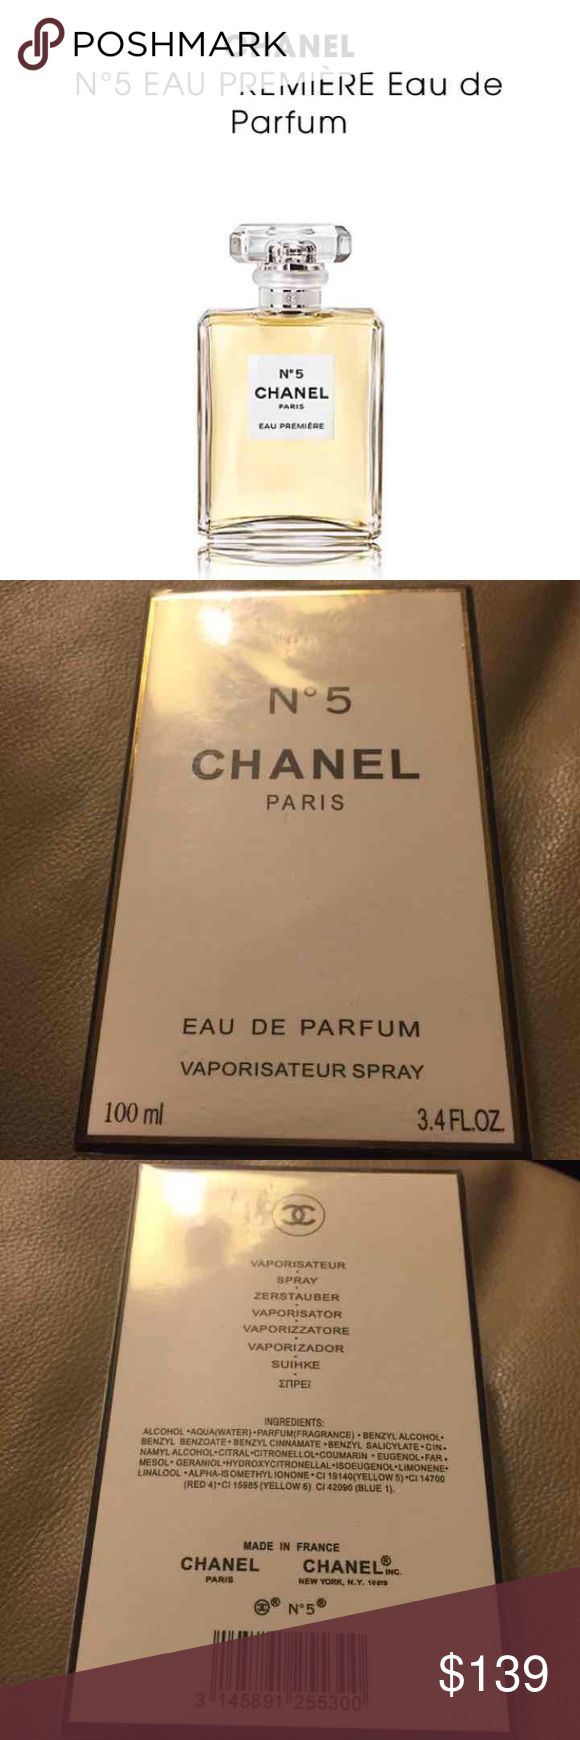 CHANEL N°5 EAU PREMIÈRE Eau de Parfum!! Brand NEW CHANEL N°5 EAU PREMIÈRE Eau de Parfum!! Retails $132.00 3.4 oz Eau de Parfum Spray A decidedly lighter, fresher, N°5 was the world's first abstract fragrance. The Eau de Parfum draws inspiration from the Parfum with which it shares its floral aldehyde signature. This floral bouquet composed around May Rose and Jasmine features bright citrus top notes. Aldehydes create a unique presence while the smooth touch of Bourbon CHANEL Other